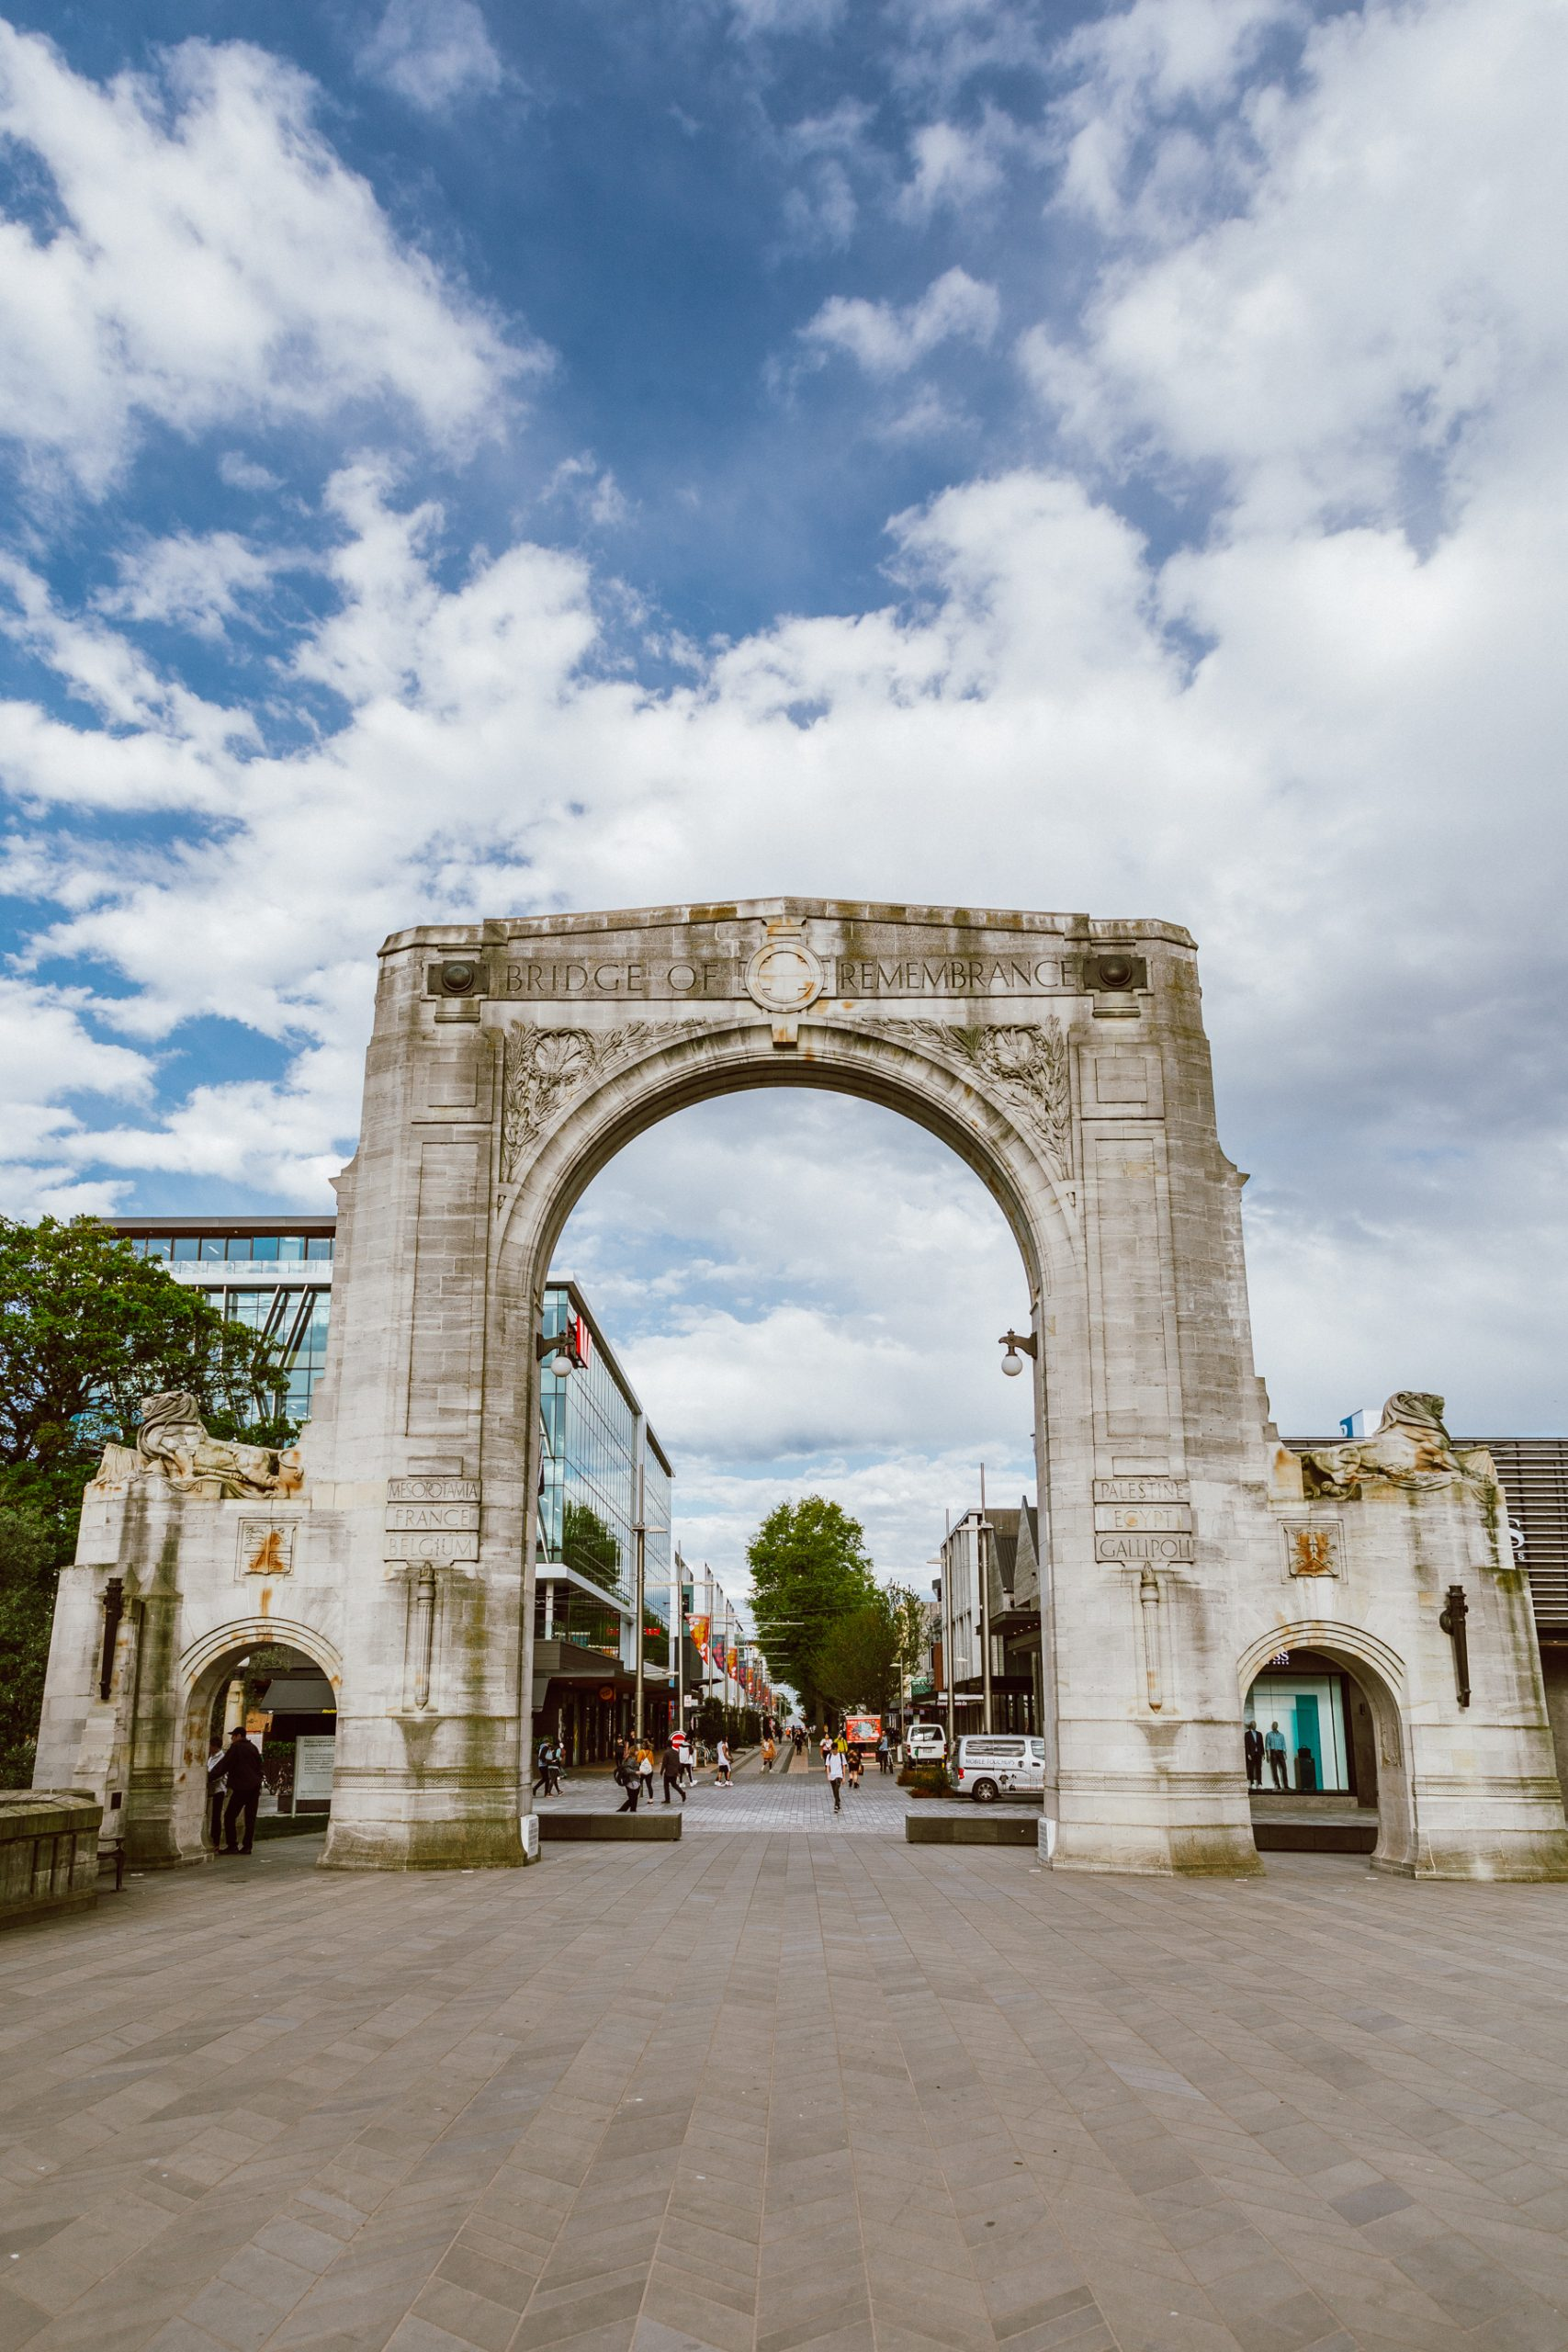 Bridge of Remembrance - Christchurch attractions